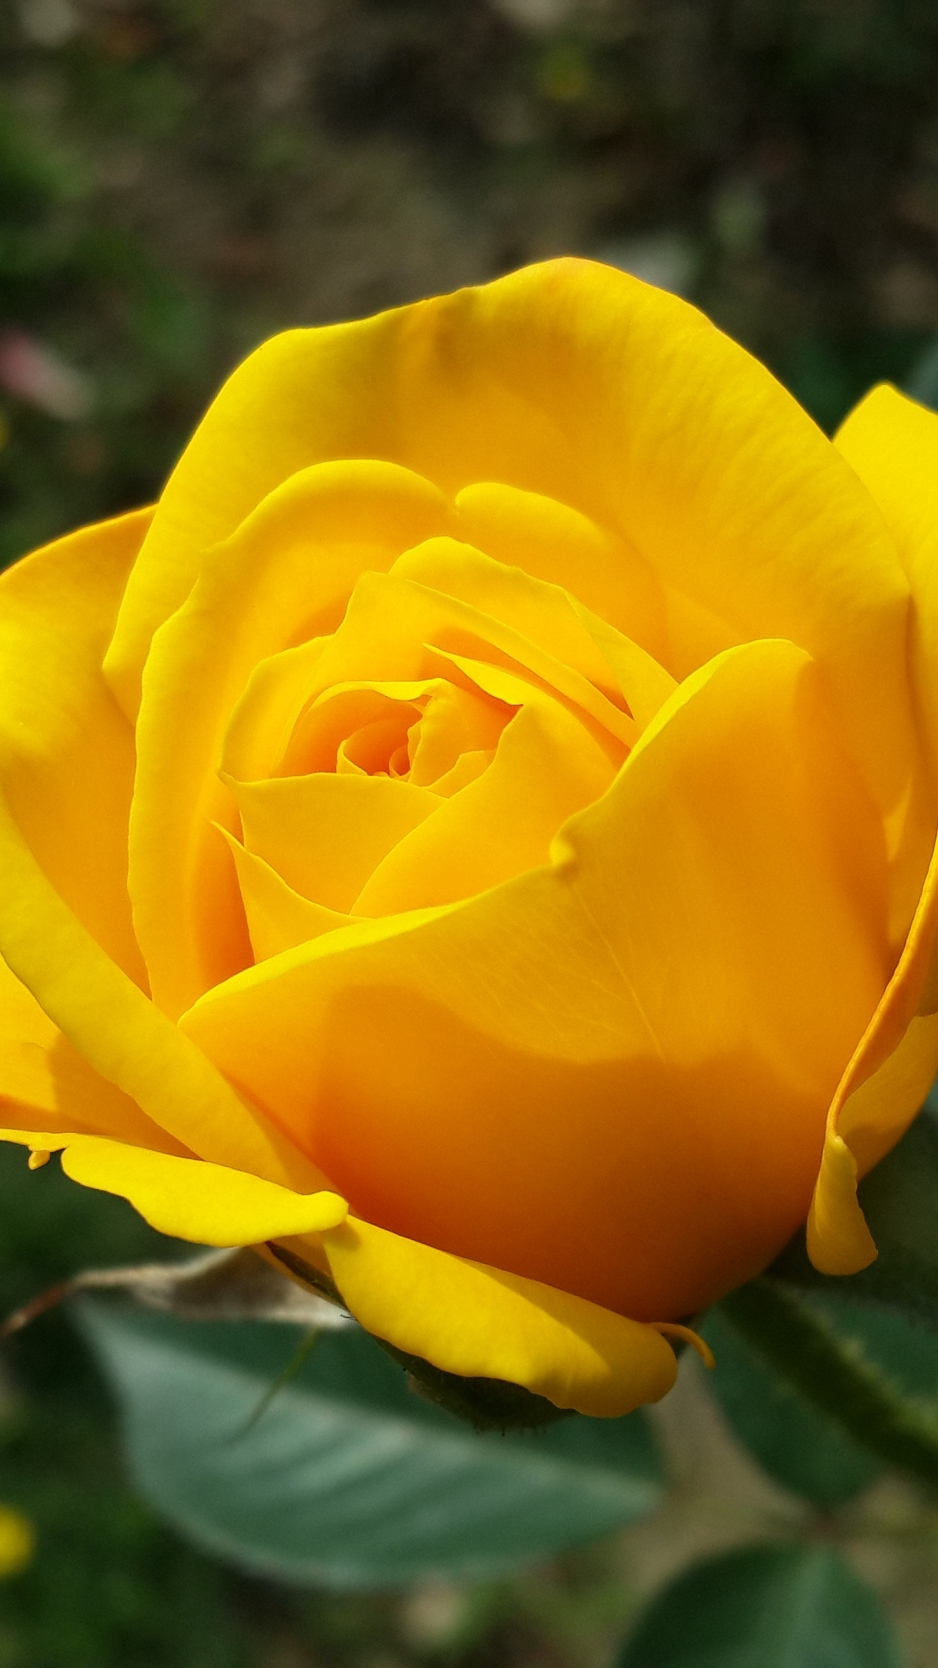 Wallpaper Yellow Rose Posted By Sarah Johnson